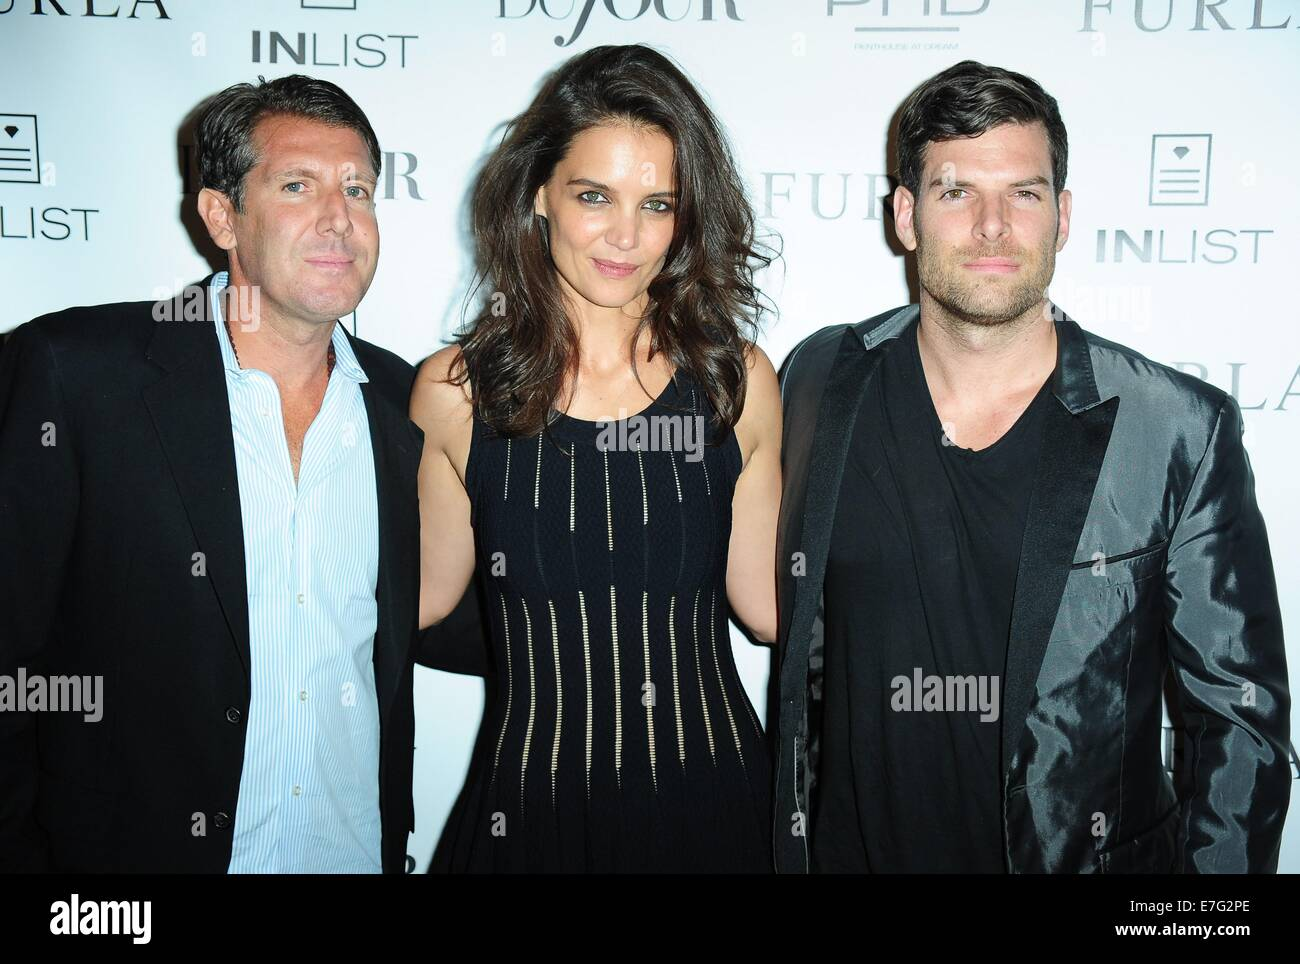 New York, NY, USA. 16th Sep, 2014. Michael Capponi, Katie Holmes, Gideon Kimbrell at arrivals for DuJour Cover Party, PHD Rooftop lounge at Dream Hotel Downtown, New York, NY September 16, 2014. Credit:  Gregorio T. Binuya/Everett Collection/Alamy Live News Stock Photo